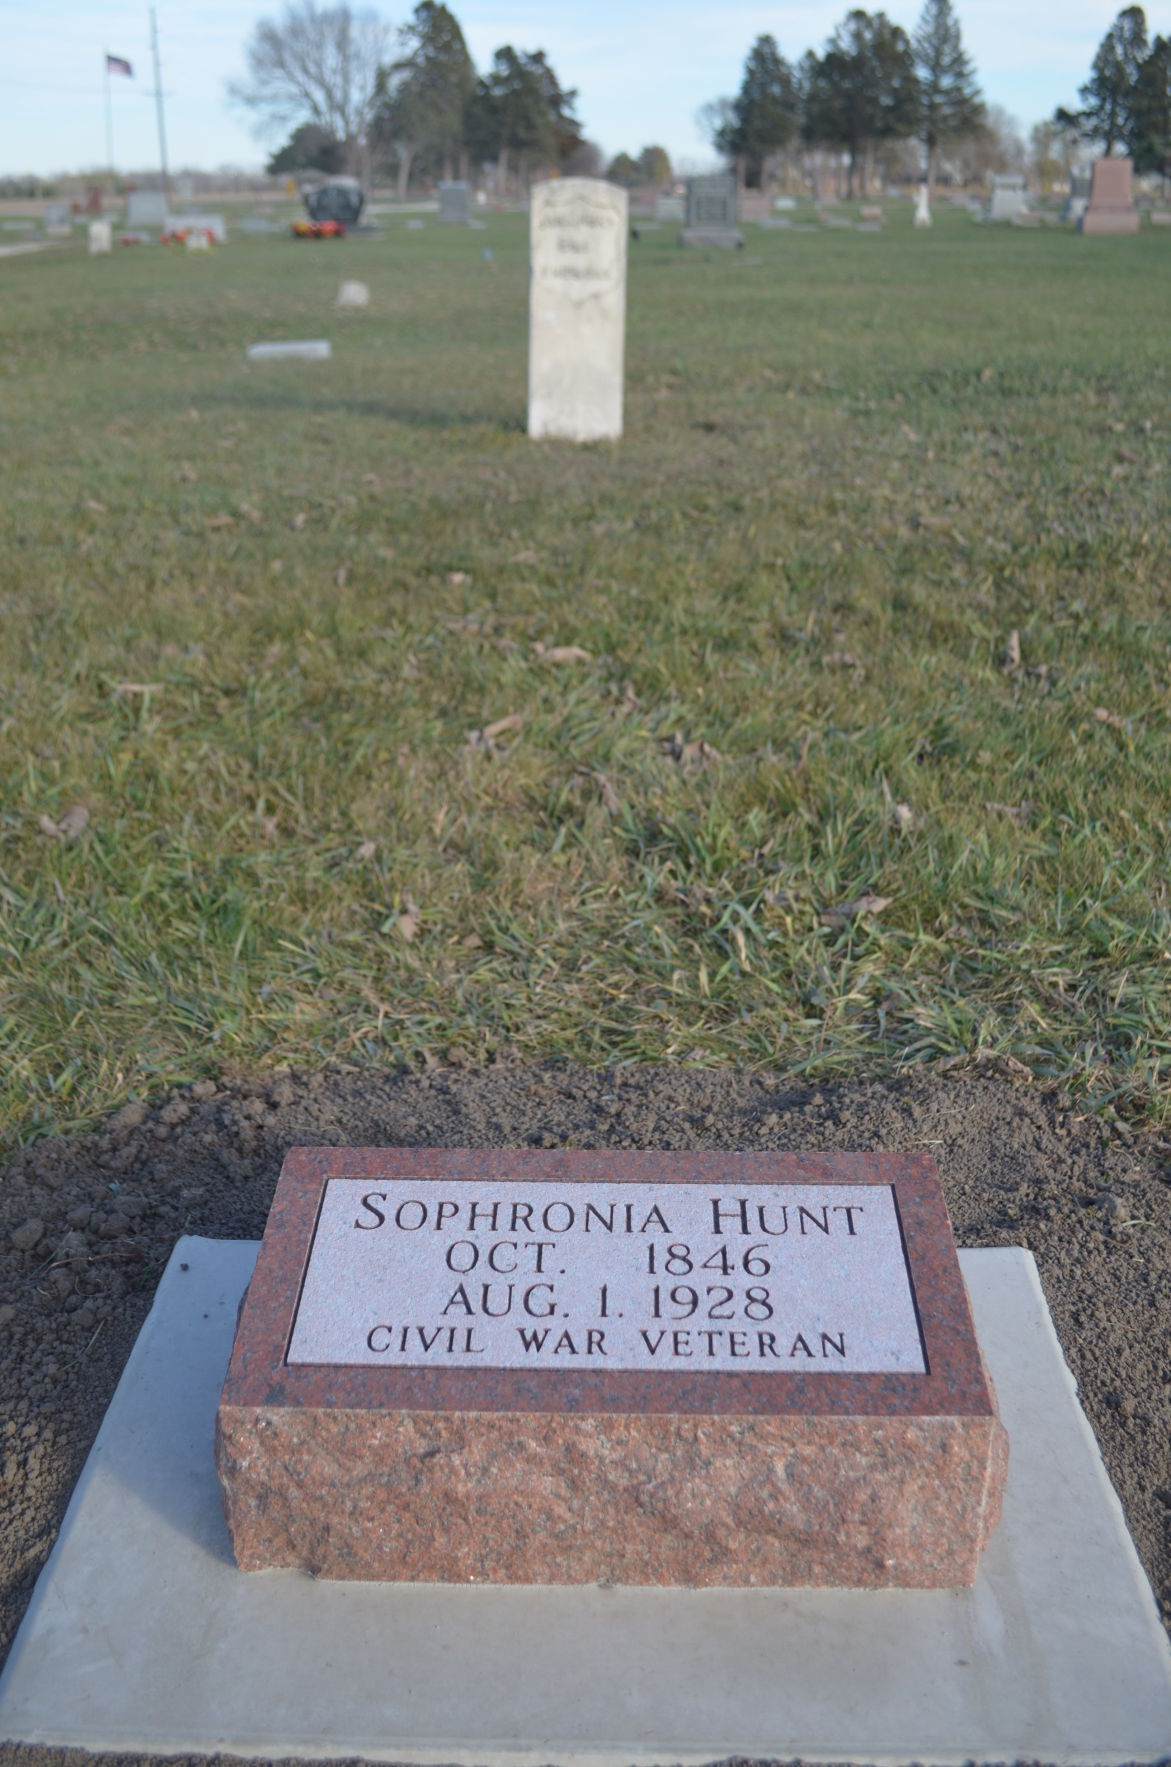 Sophronia Hunt